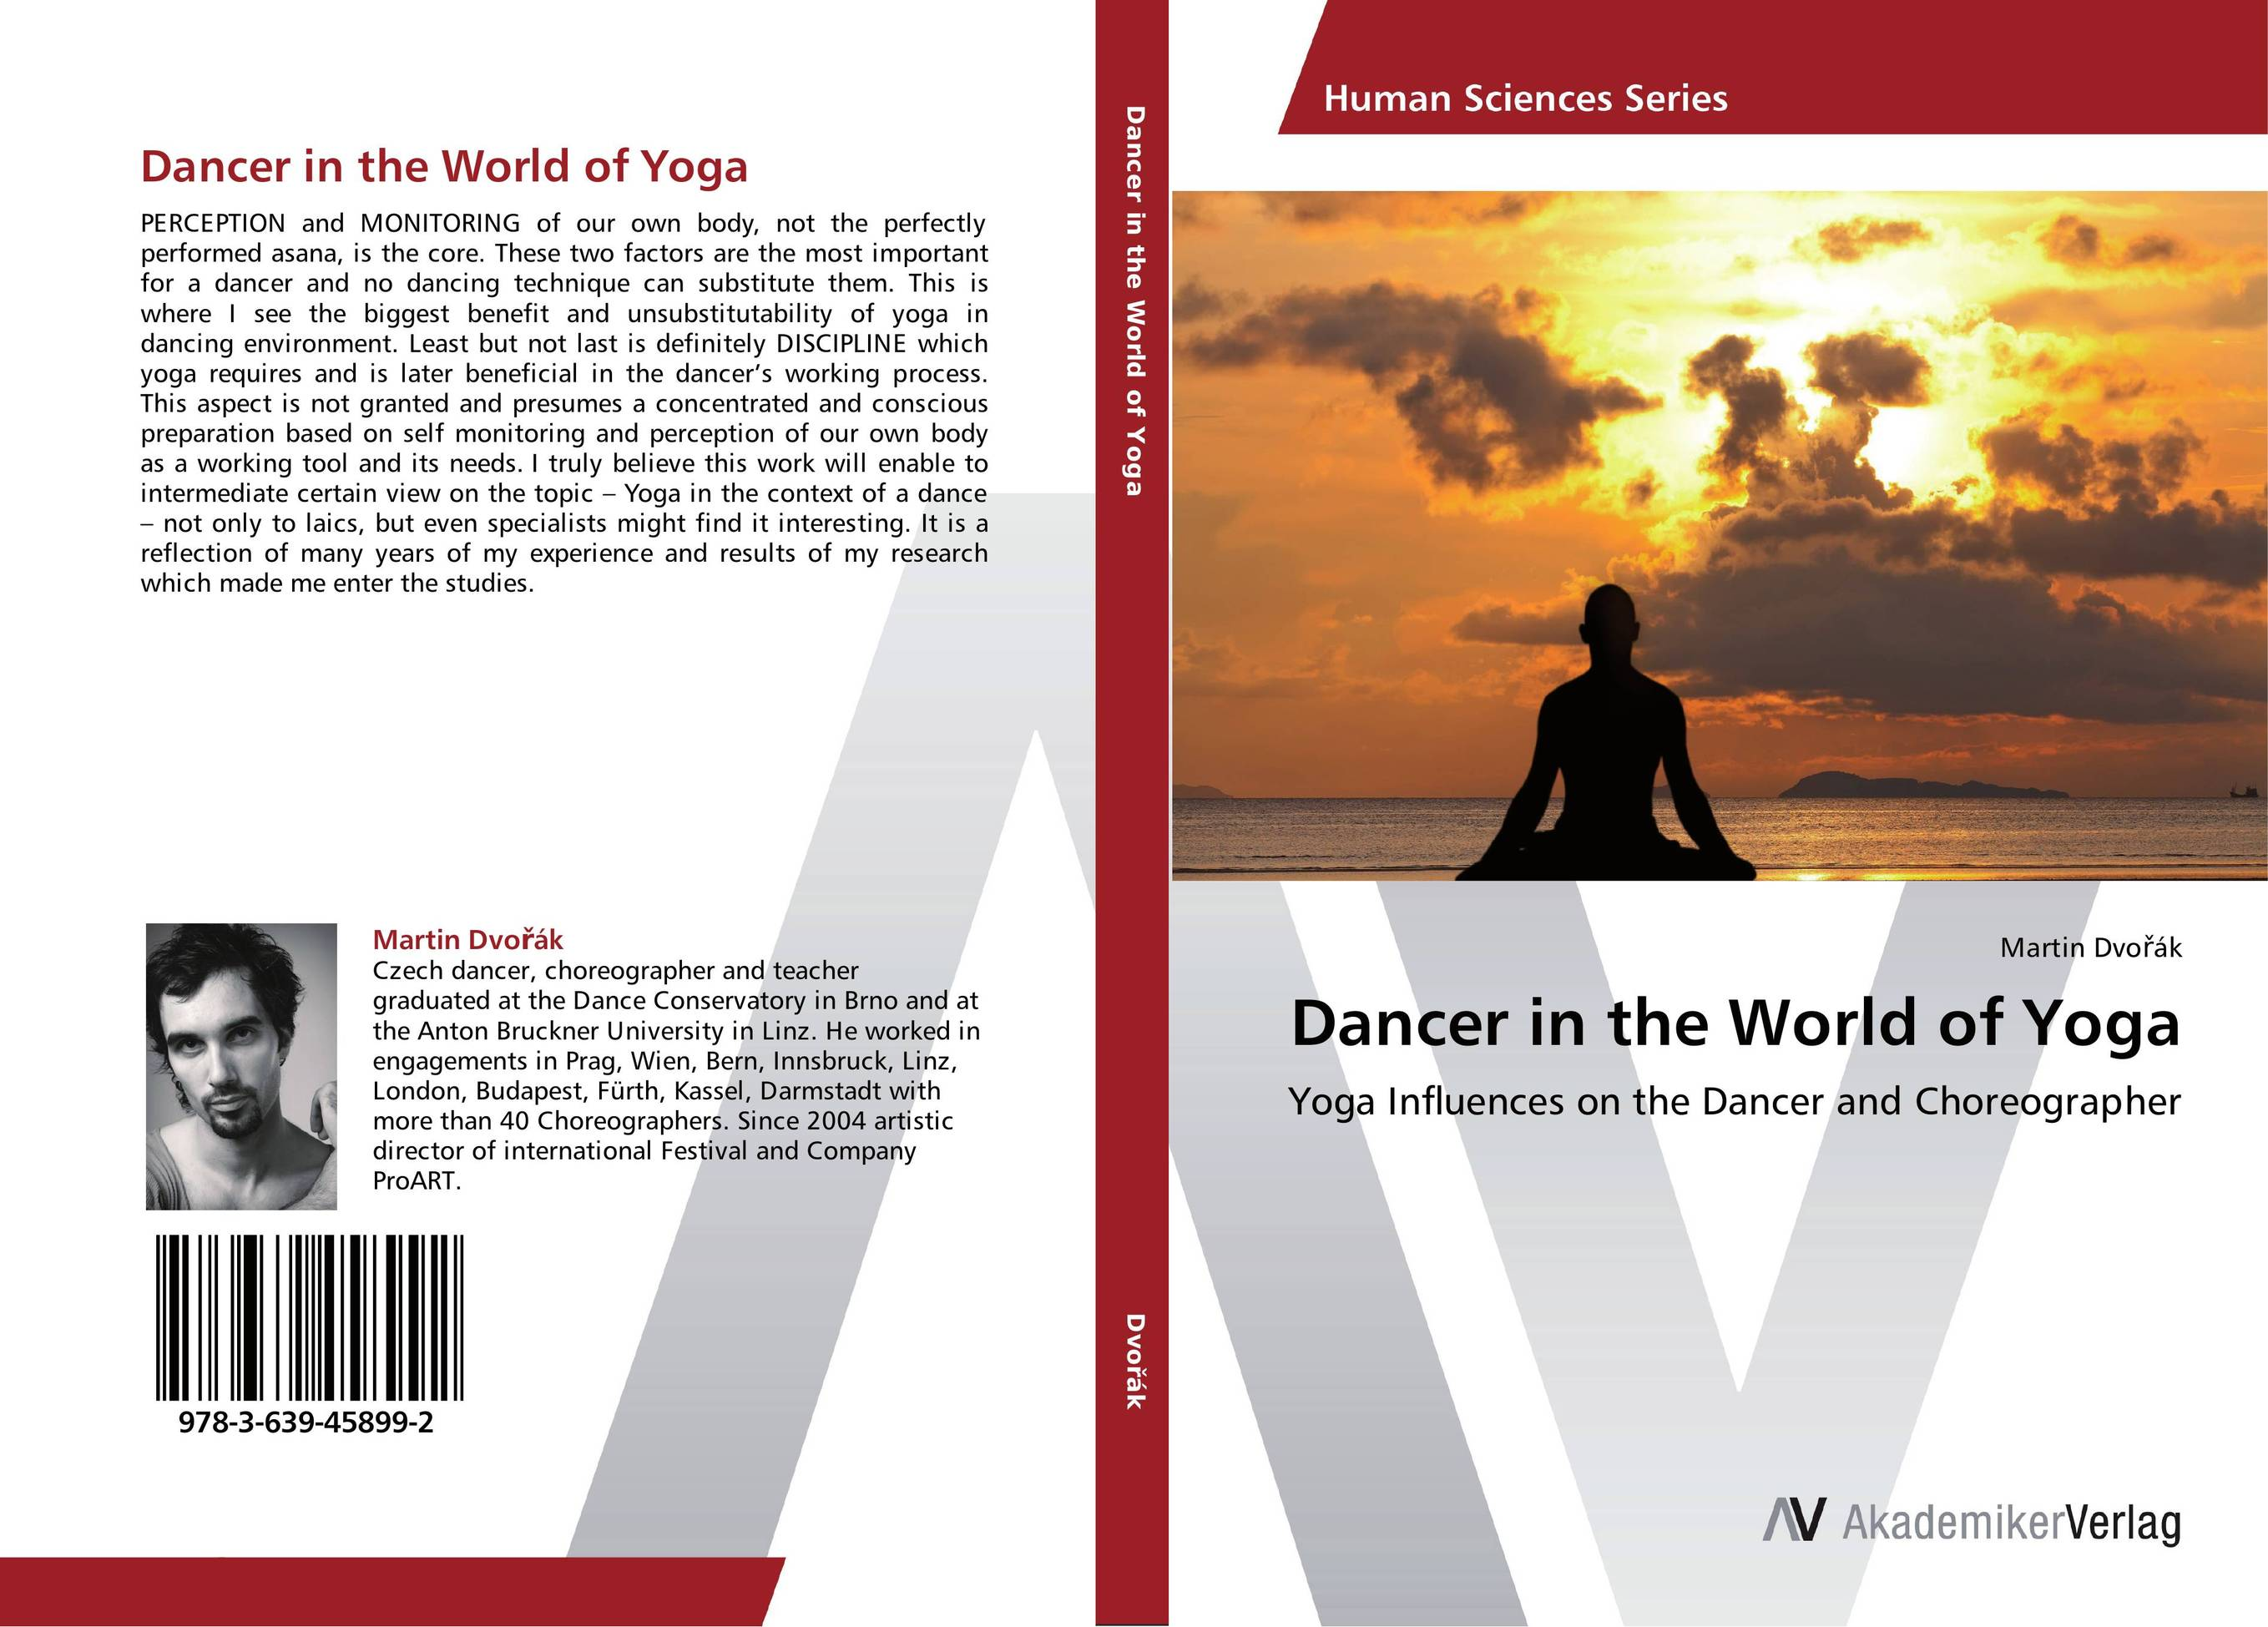 Dancer in the World of Yoga dancer in the world of yoga